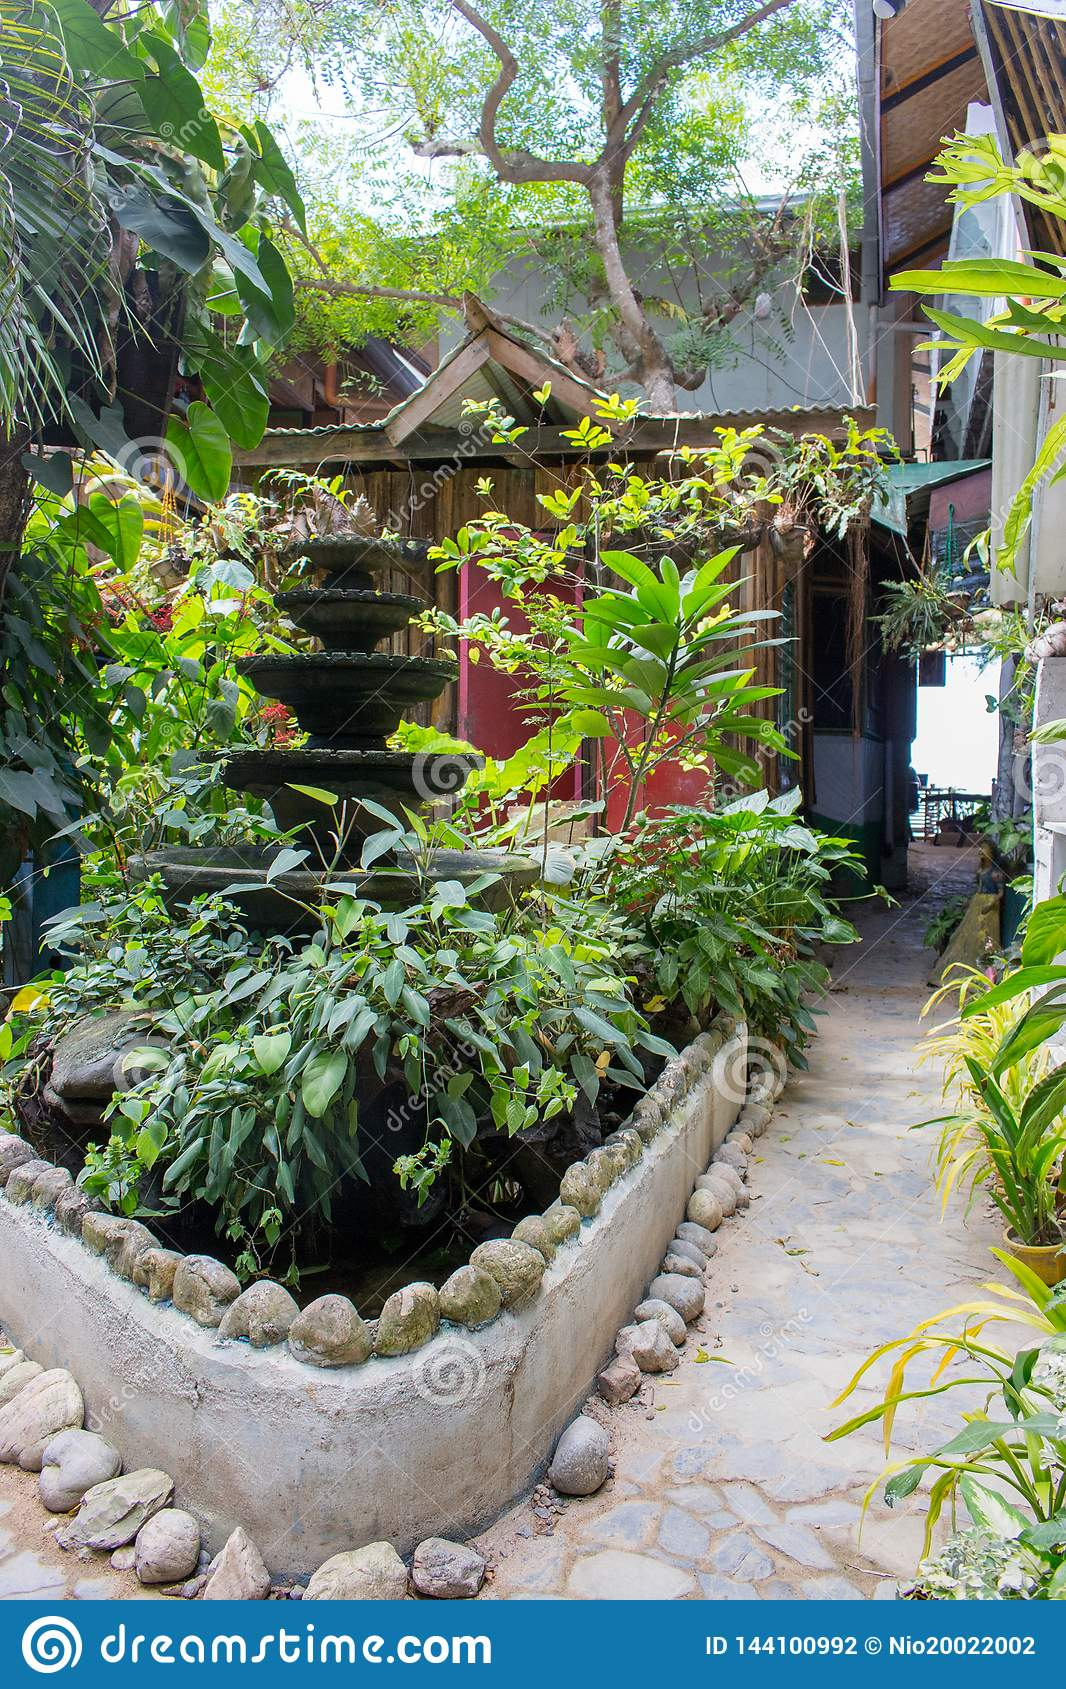 Patio With Plants Flower Pots Trees And Small Fontain Beautiful Backyard In Asian Village Philippines Gardering Concept Stock Photo Image Of Terrace Village 144100992